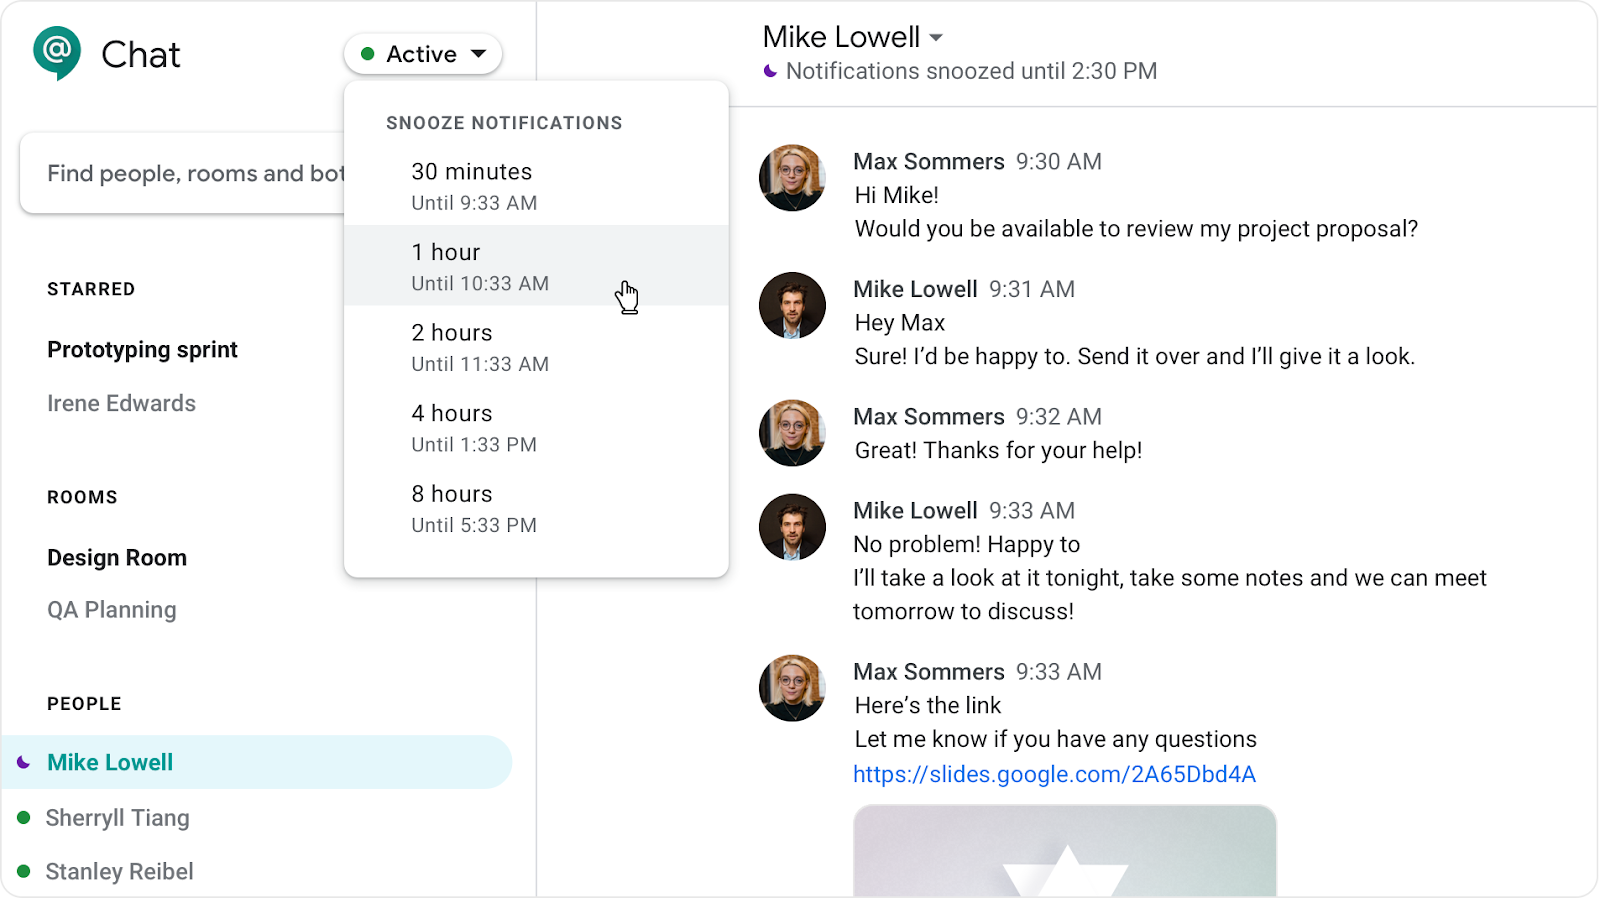 G Suite Updates Blog: Snooze notifications in Hangouts Chat